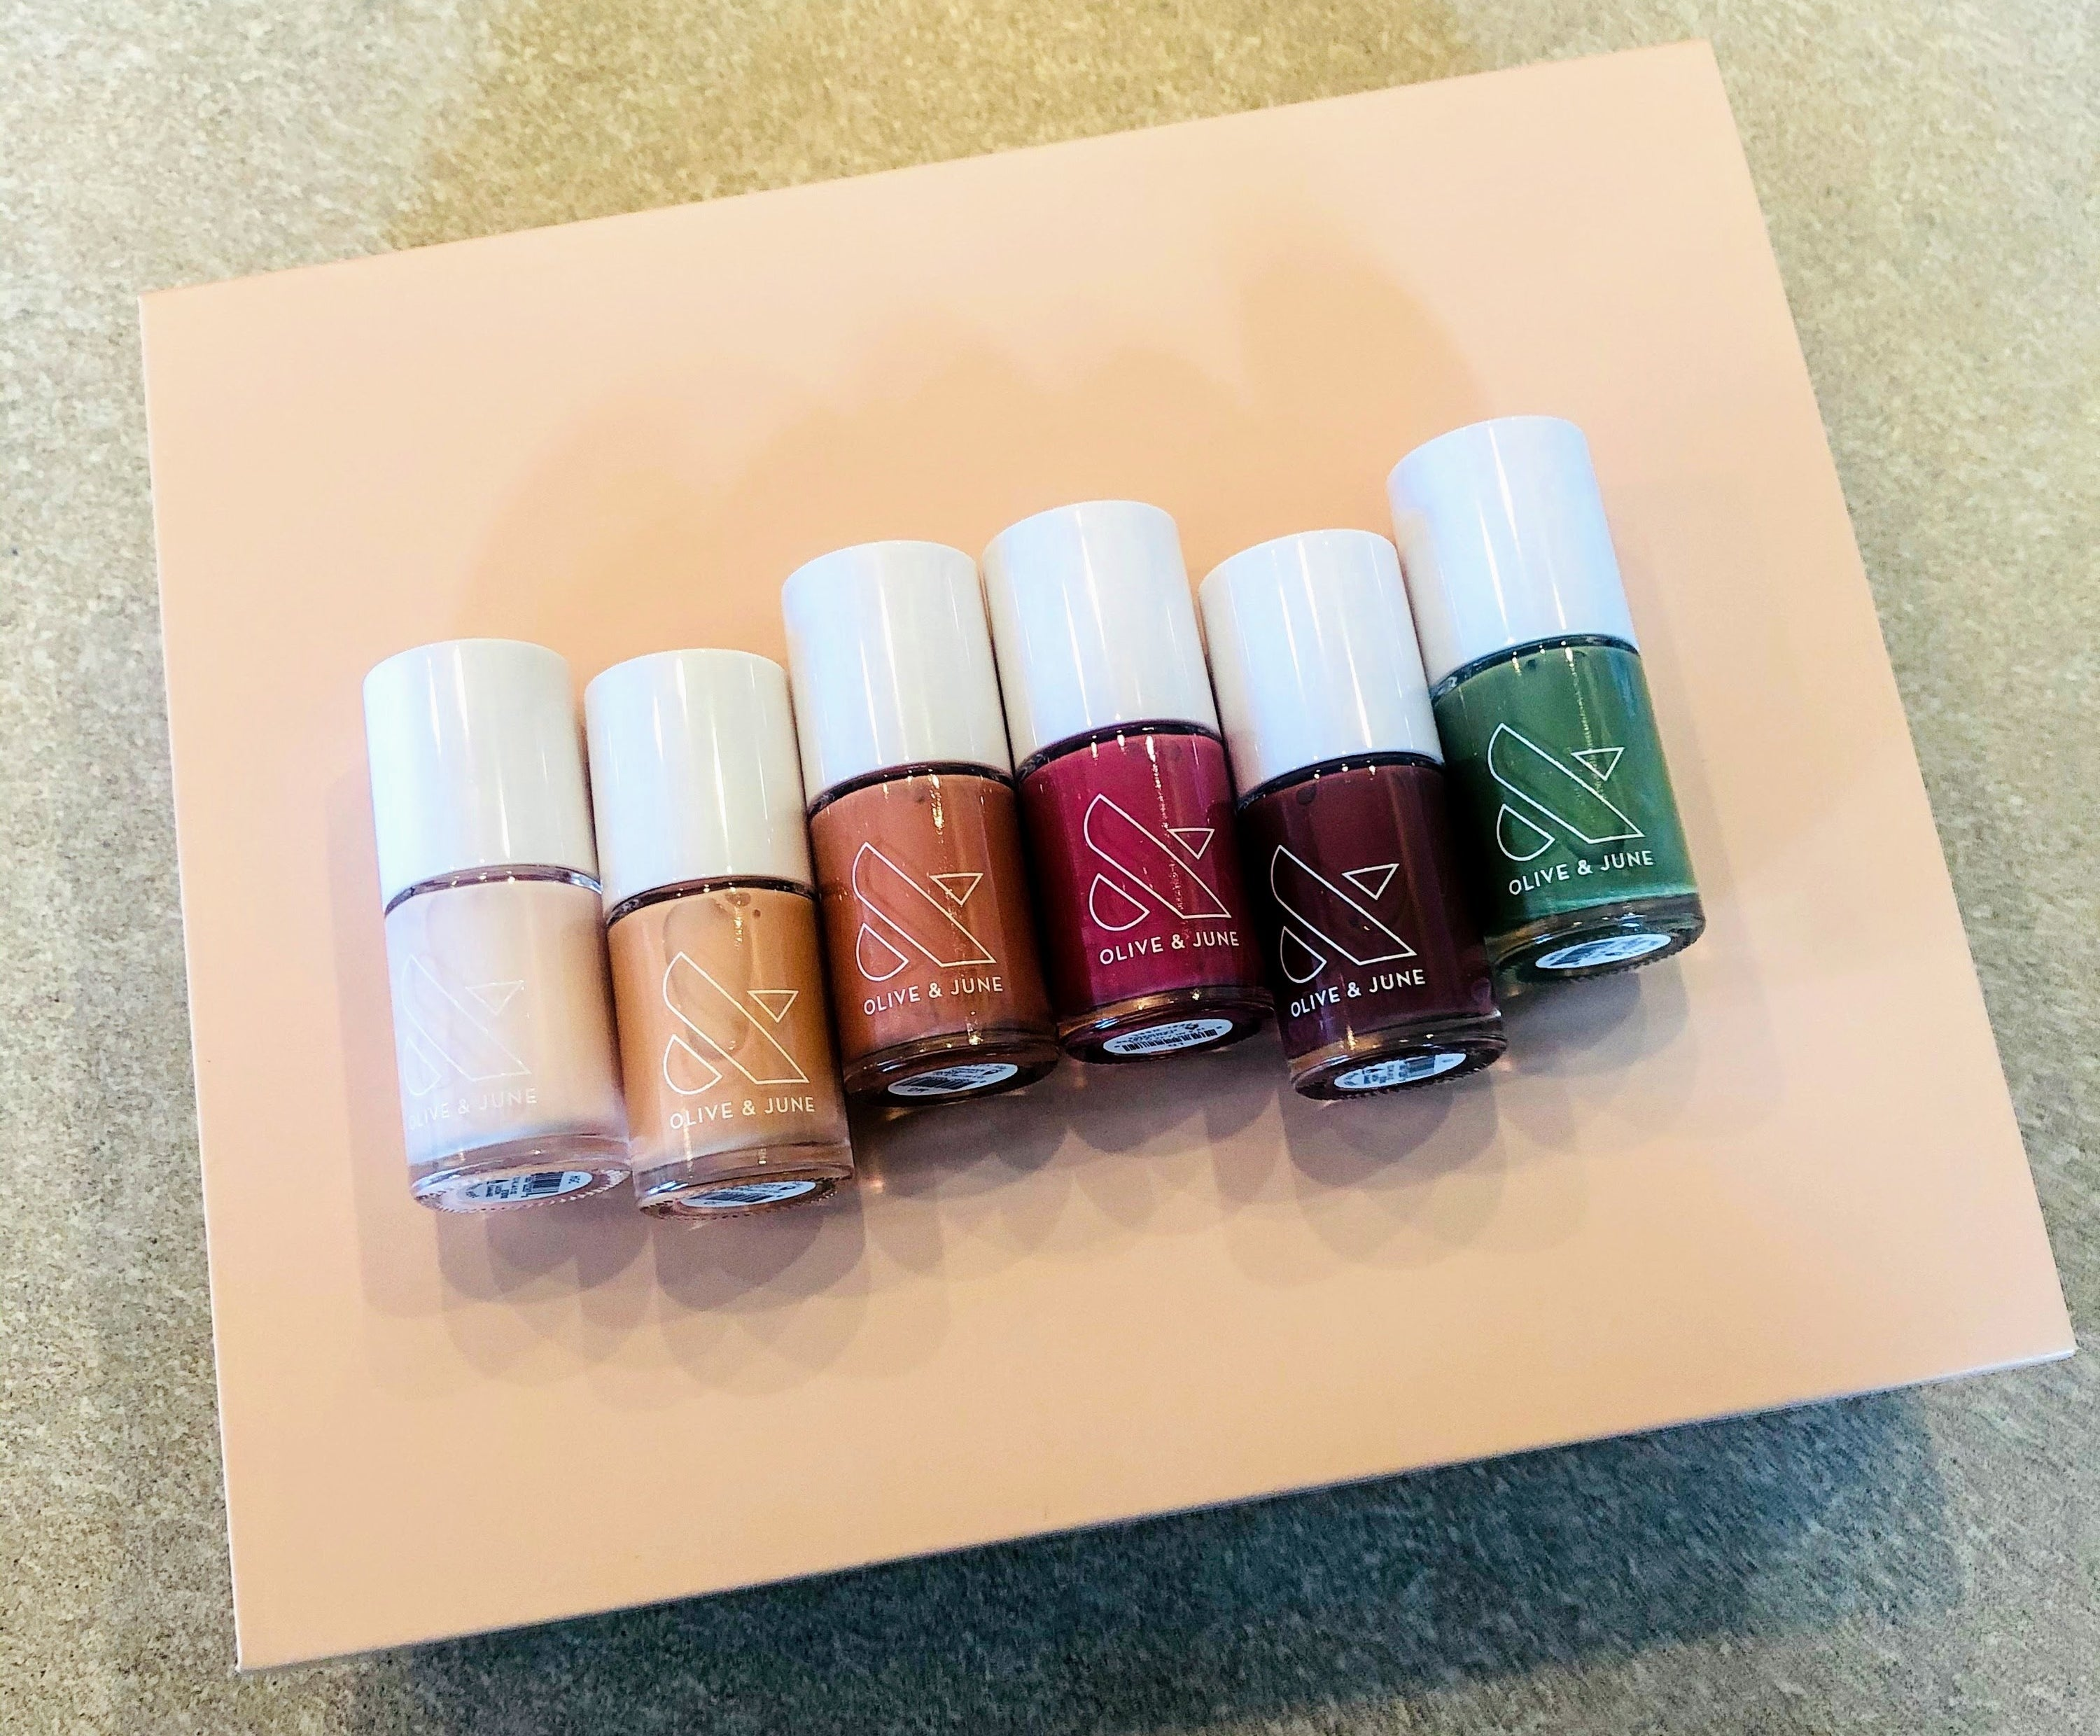 A cream box with six nail polish bottle on top in cream, yellow, orange, red, brown, and green.